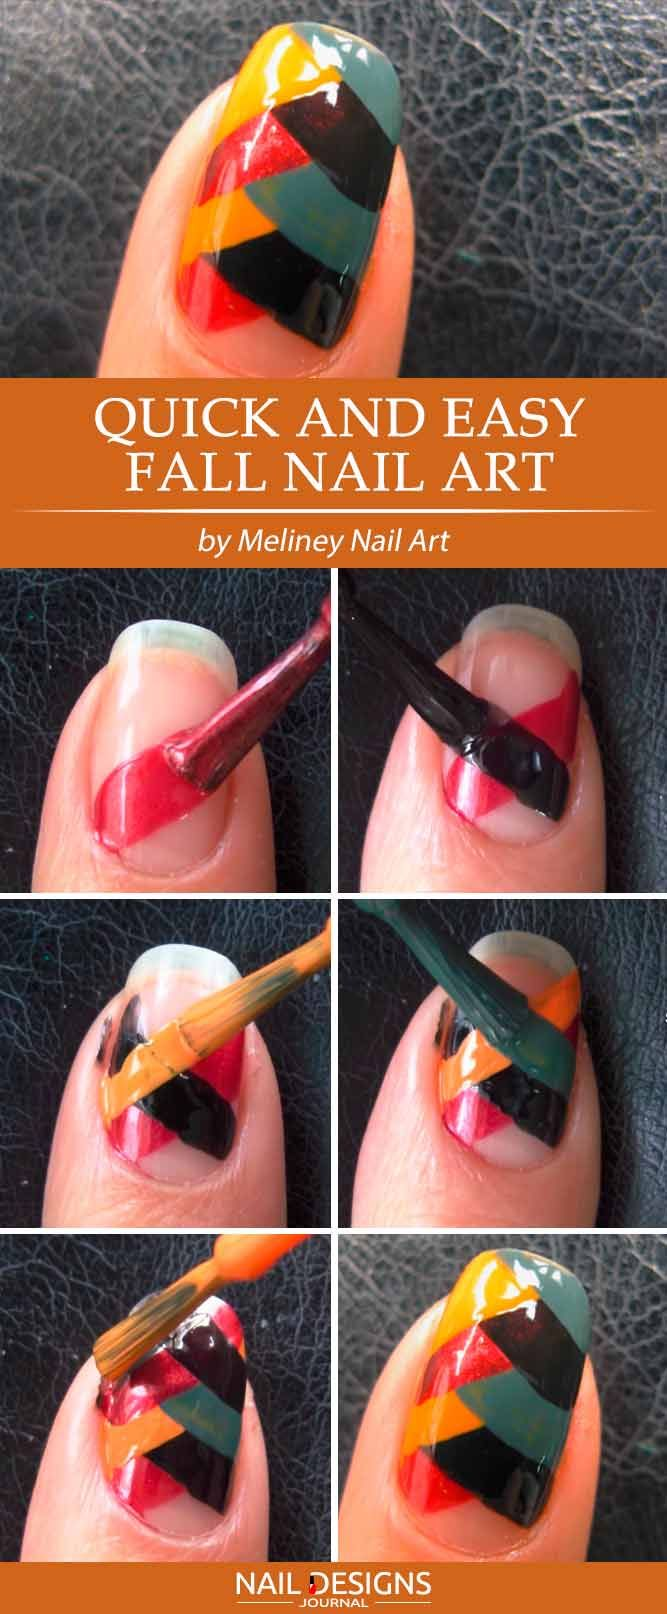 Try These Easy Nail Designs Naildesignsjournal Com Nail Designs Easy Diy Simple Nail Designs Simple Nail Art Designs